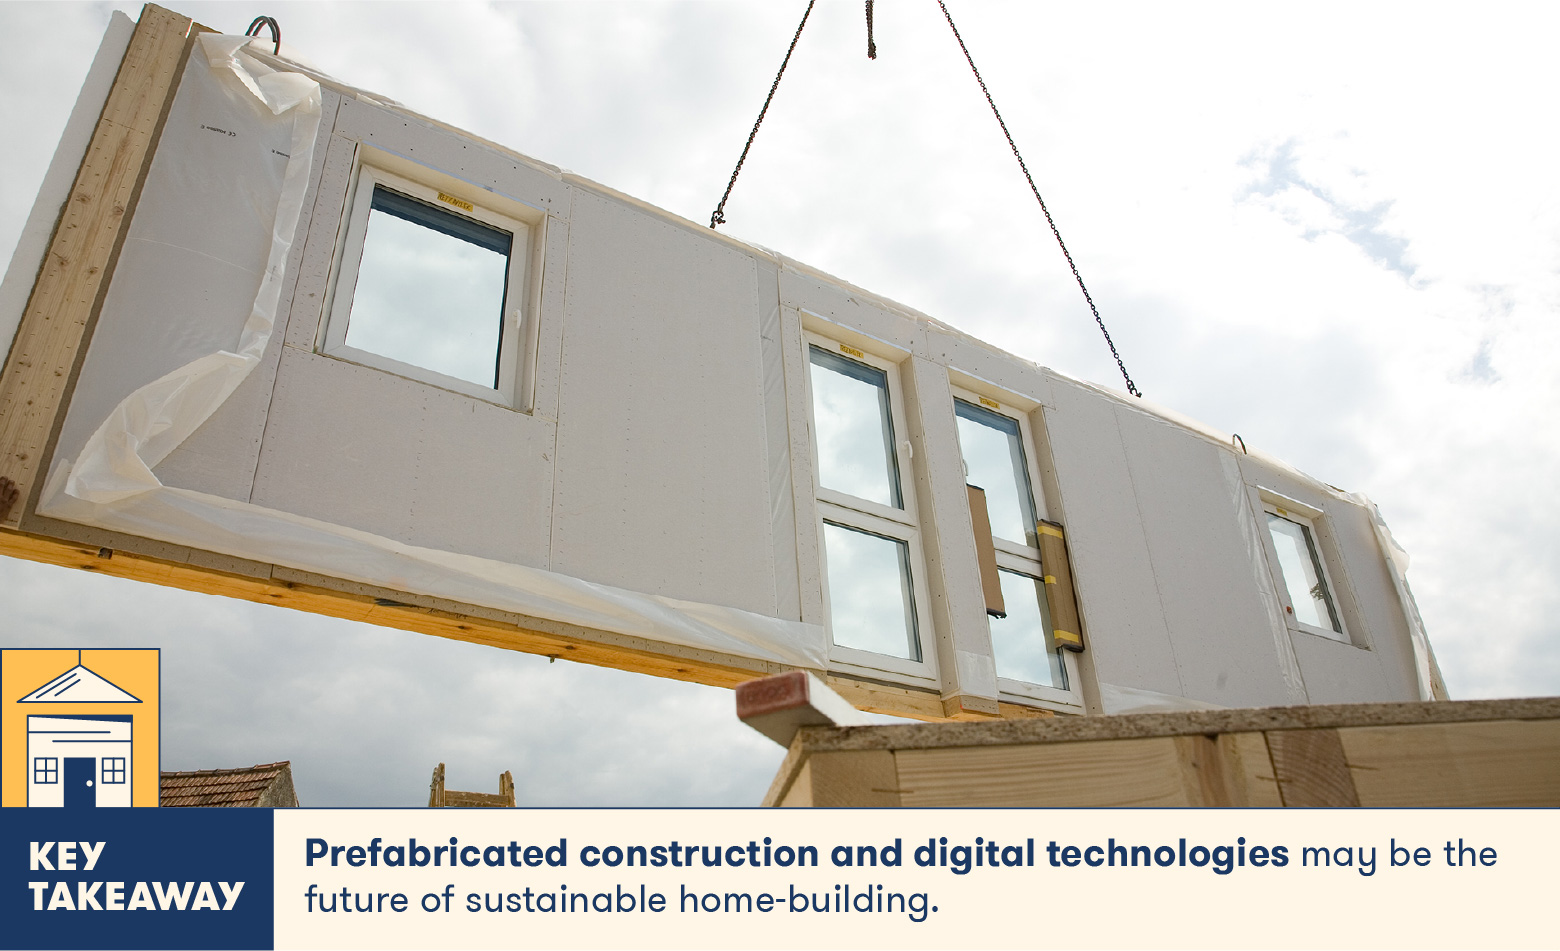 Prefabricated construction and digital technologies are the future